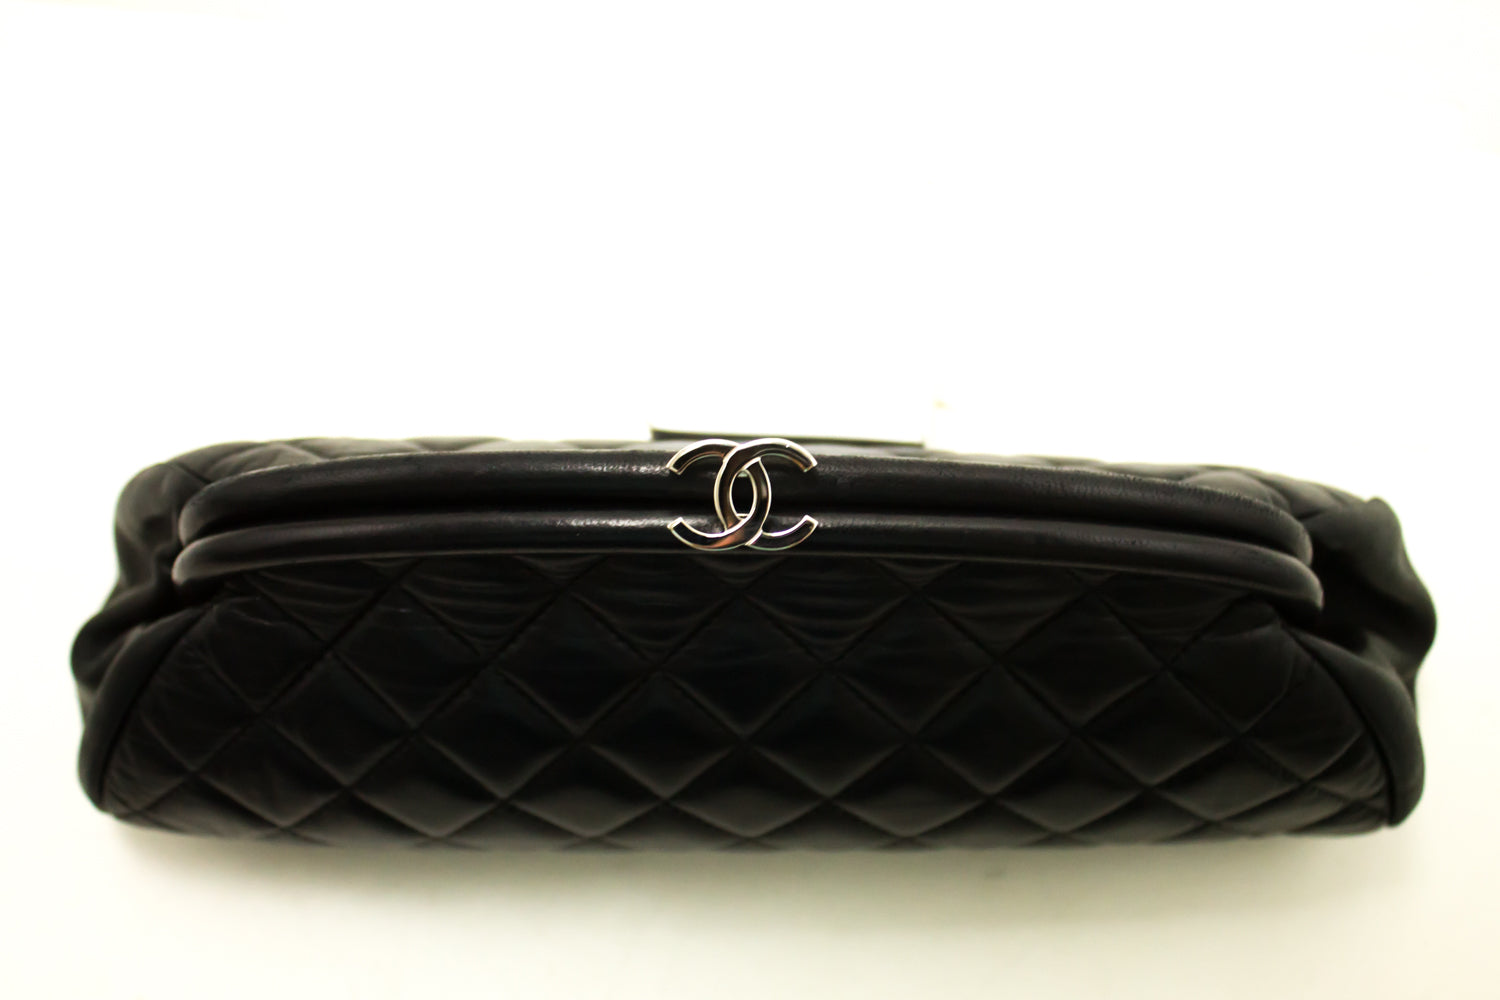 596f2ba74d8c ... CHANEL Lambskin Timeless Clutch Bag Black Quilted Leather Silver n48- Chanel-hannari-shop ...